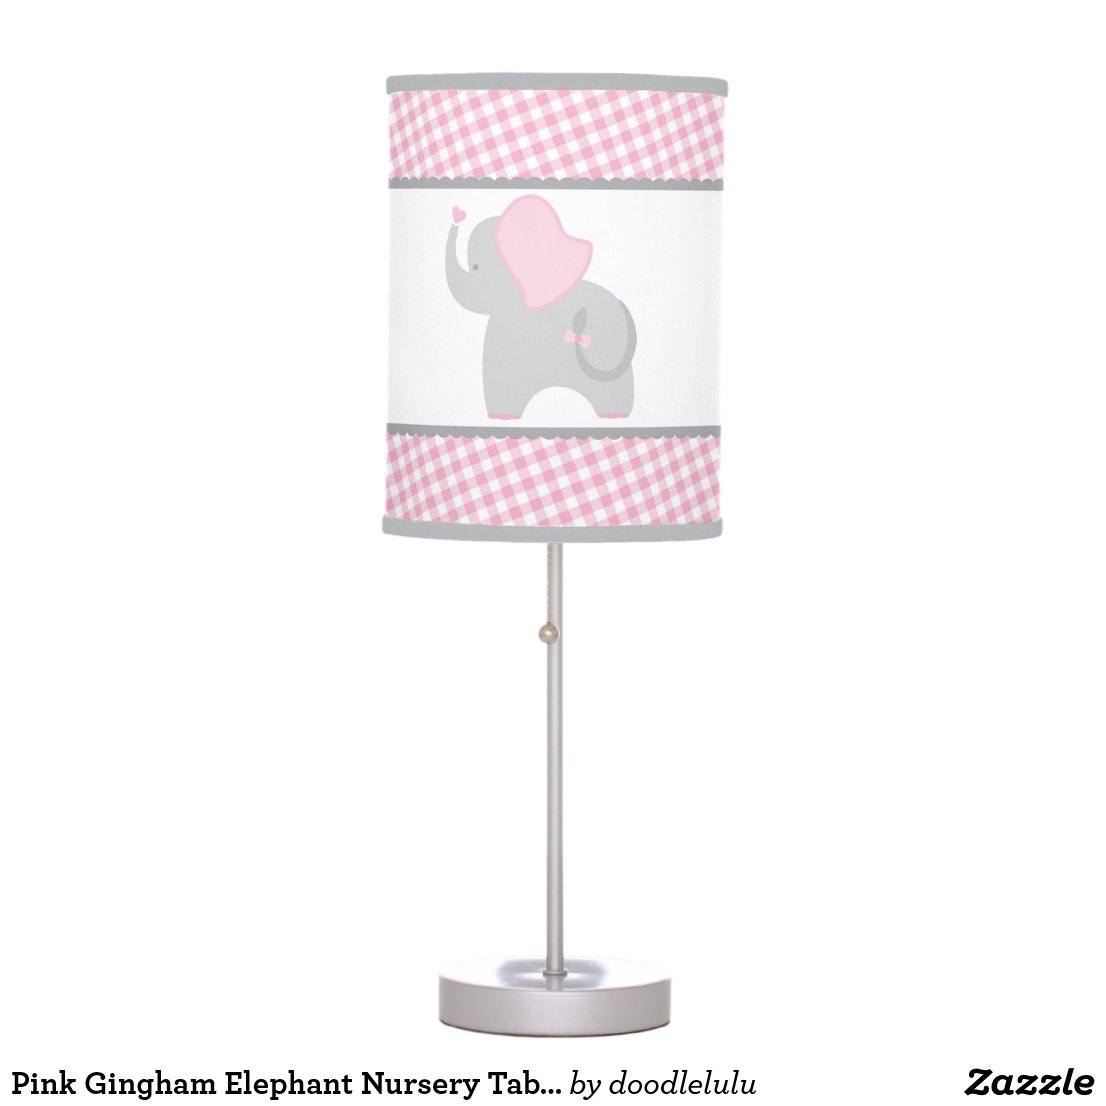 Pink Gingham Elephant Nursery Table Lamp